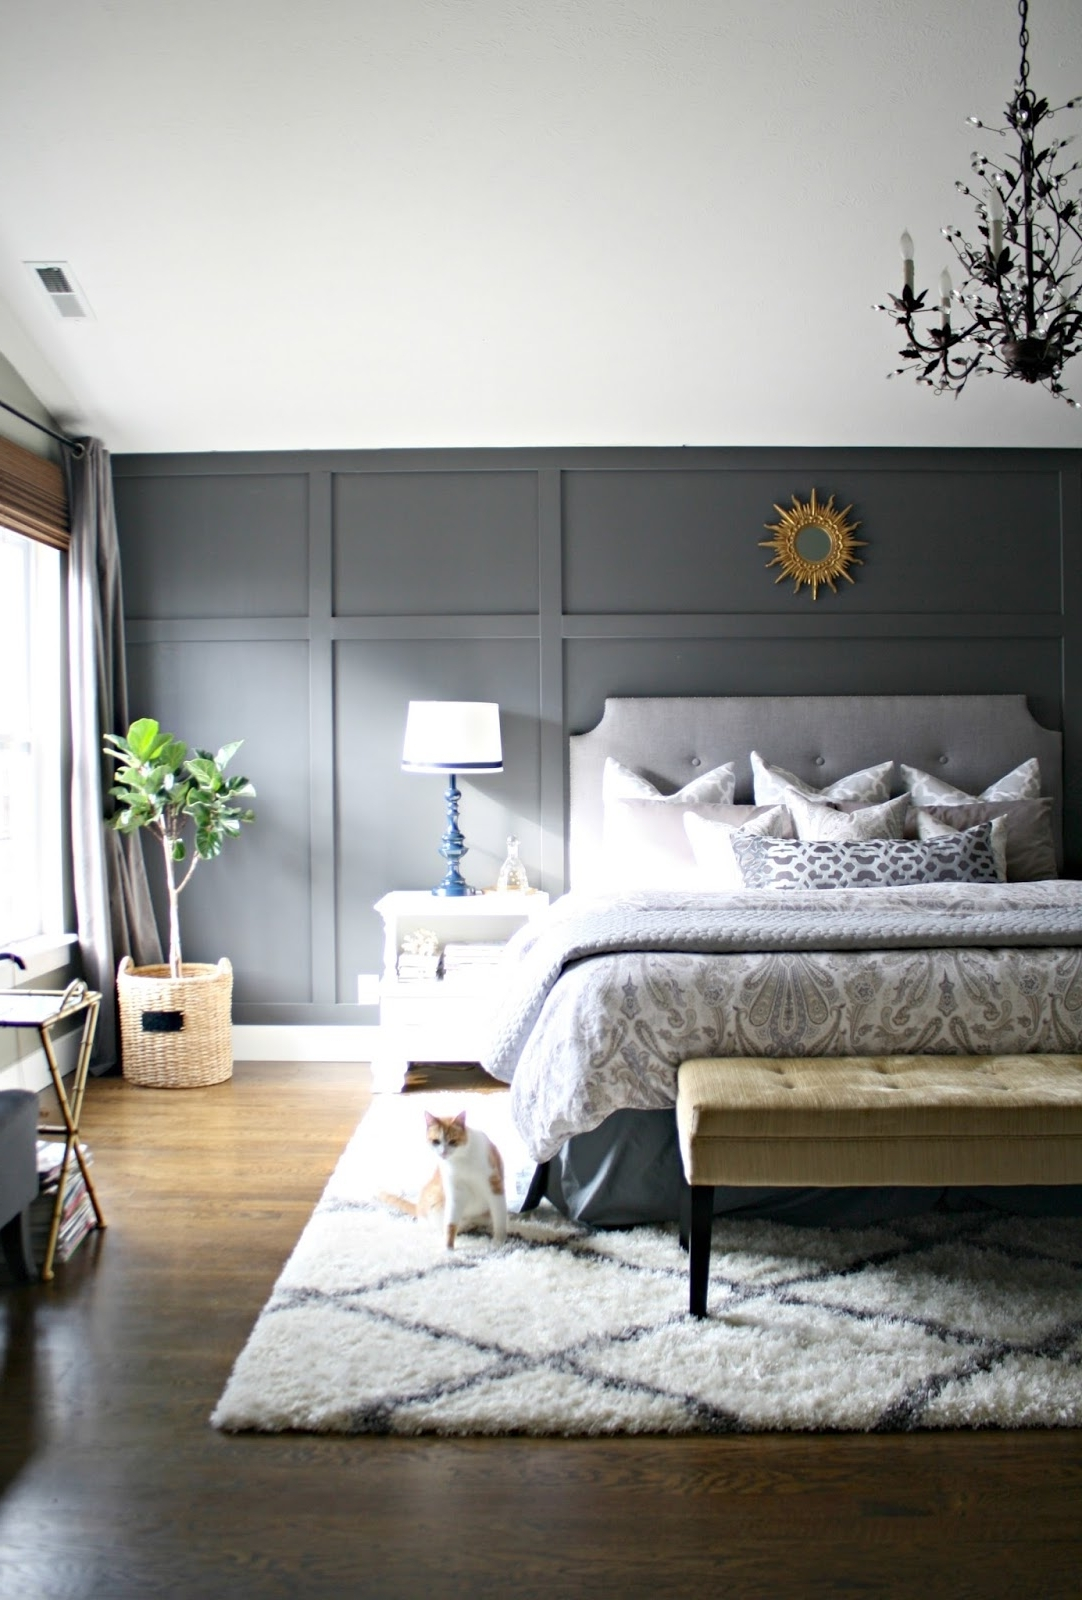 Bedroom Design: Cheap Wood Accent Wall Accent Wall Color Regarding Famous Gray Wall Accents (View 2 of 15)